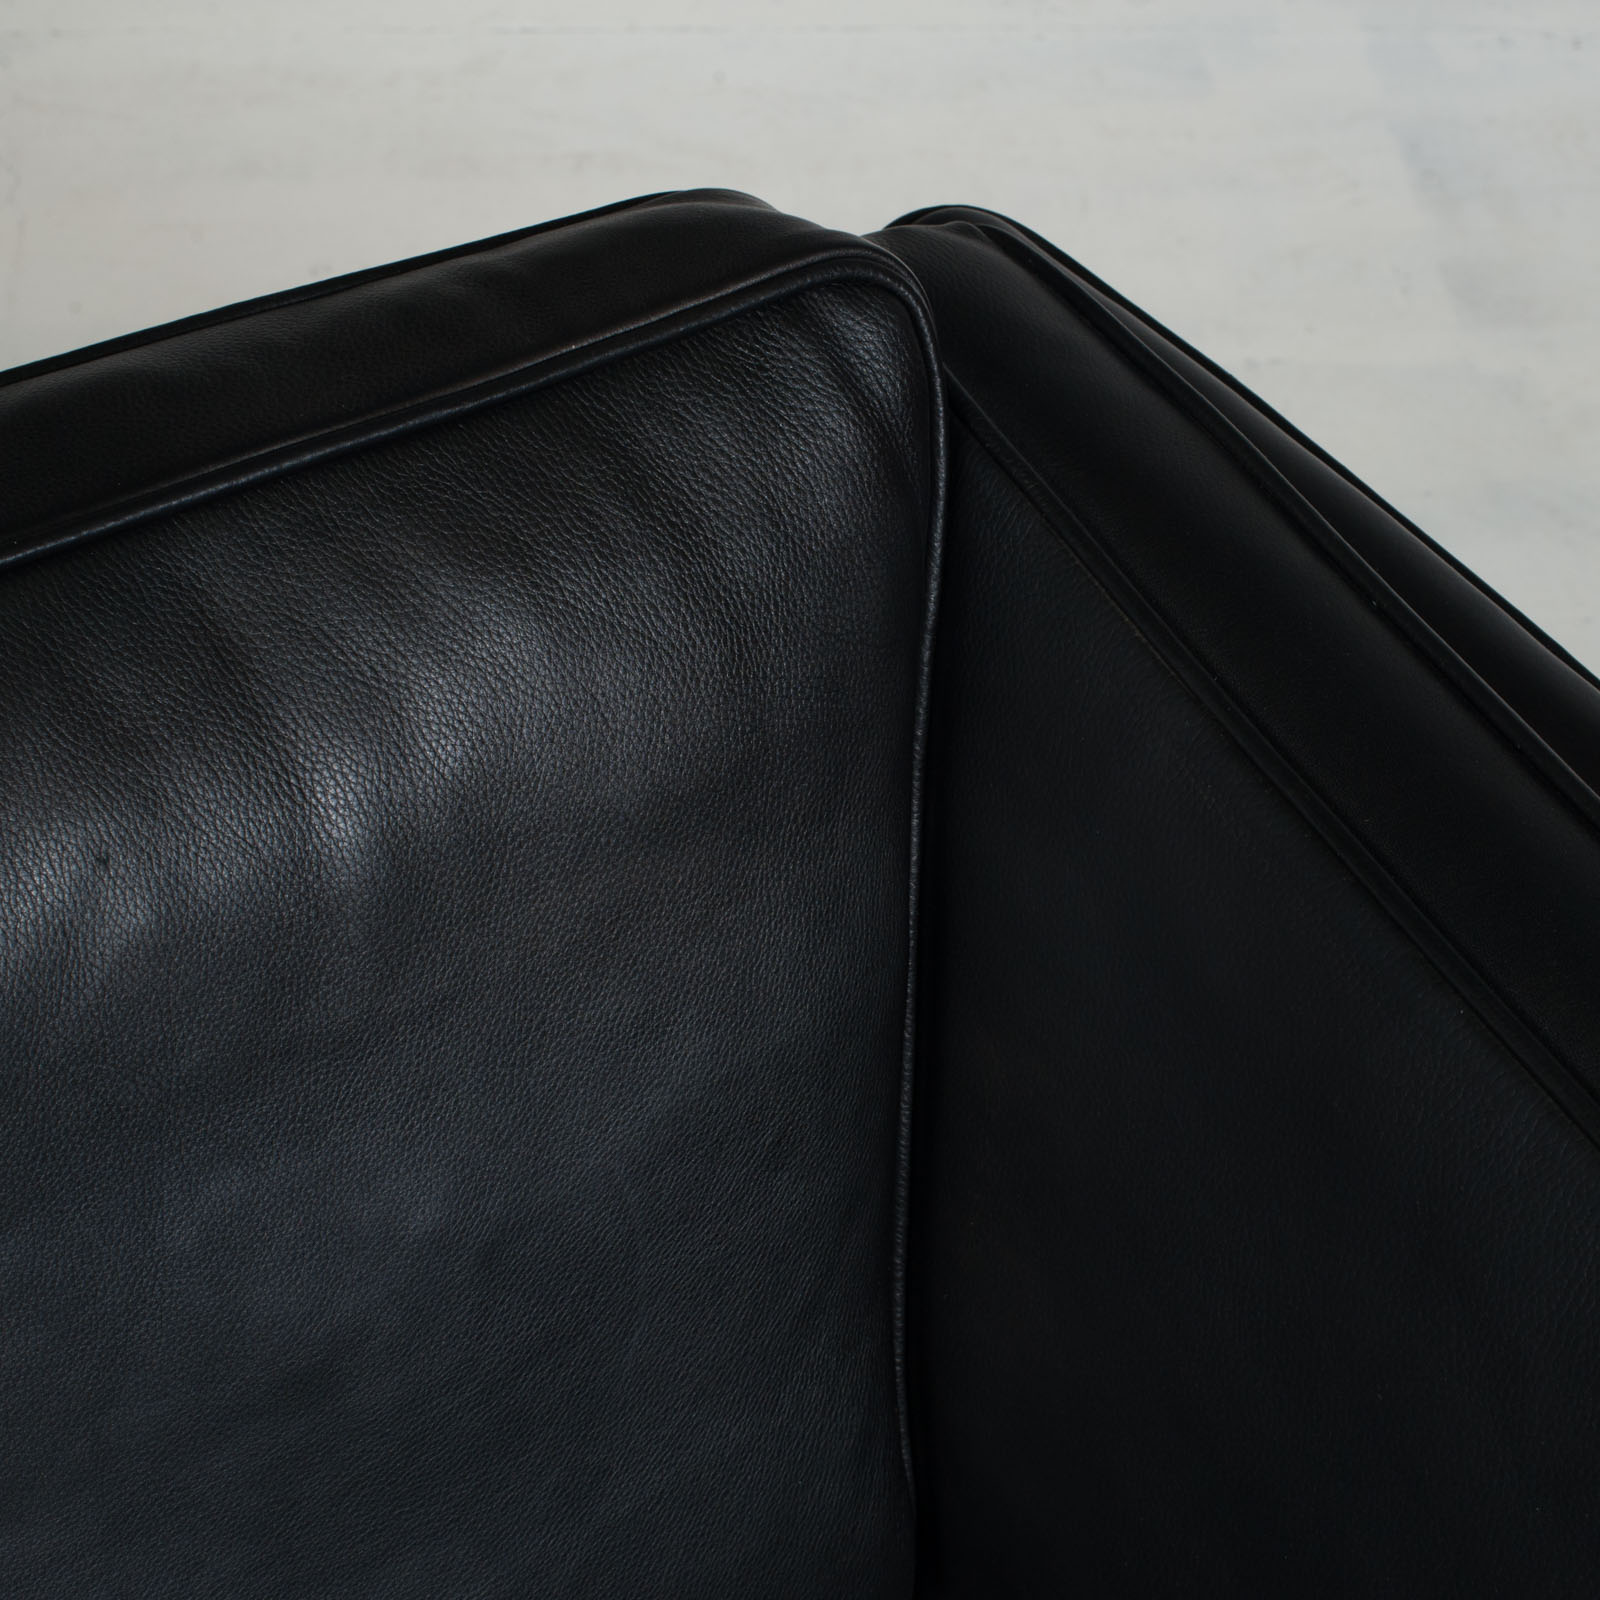 3 Seat Sofa In Black Aniline Leather 1960s Denmark 08